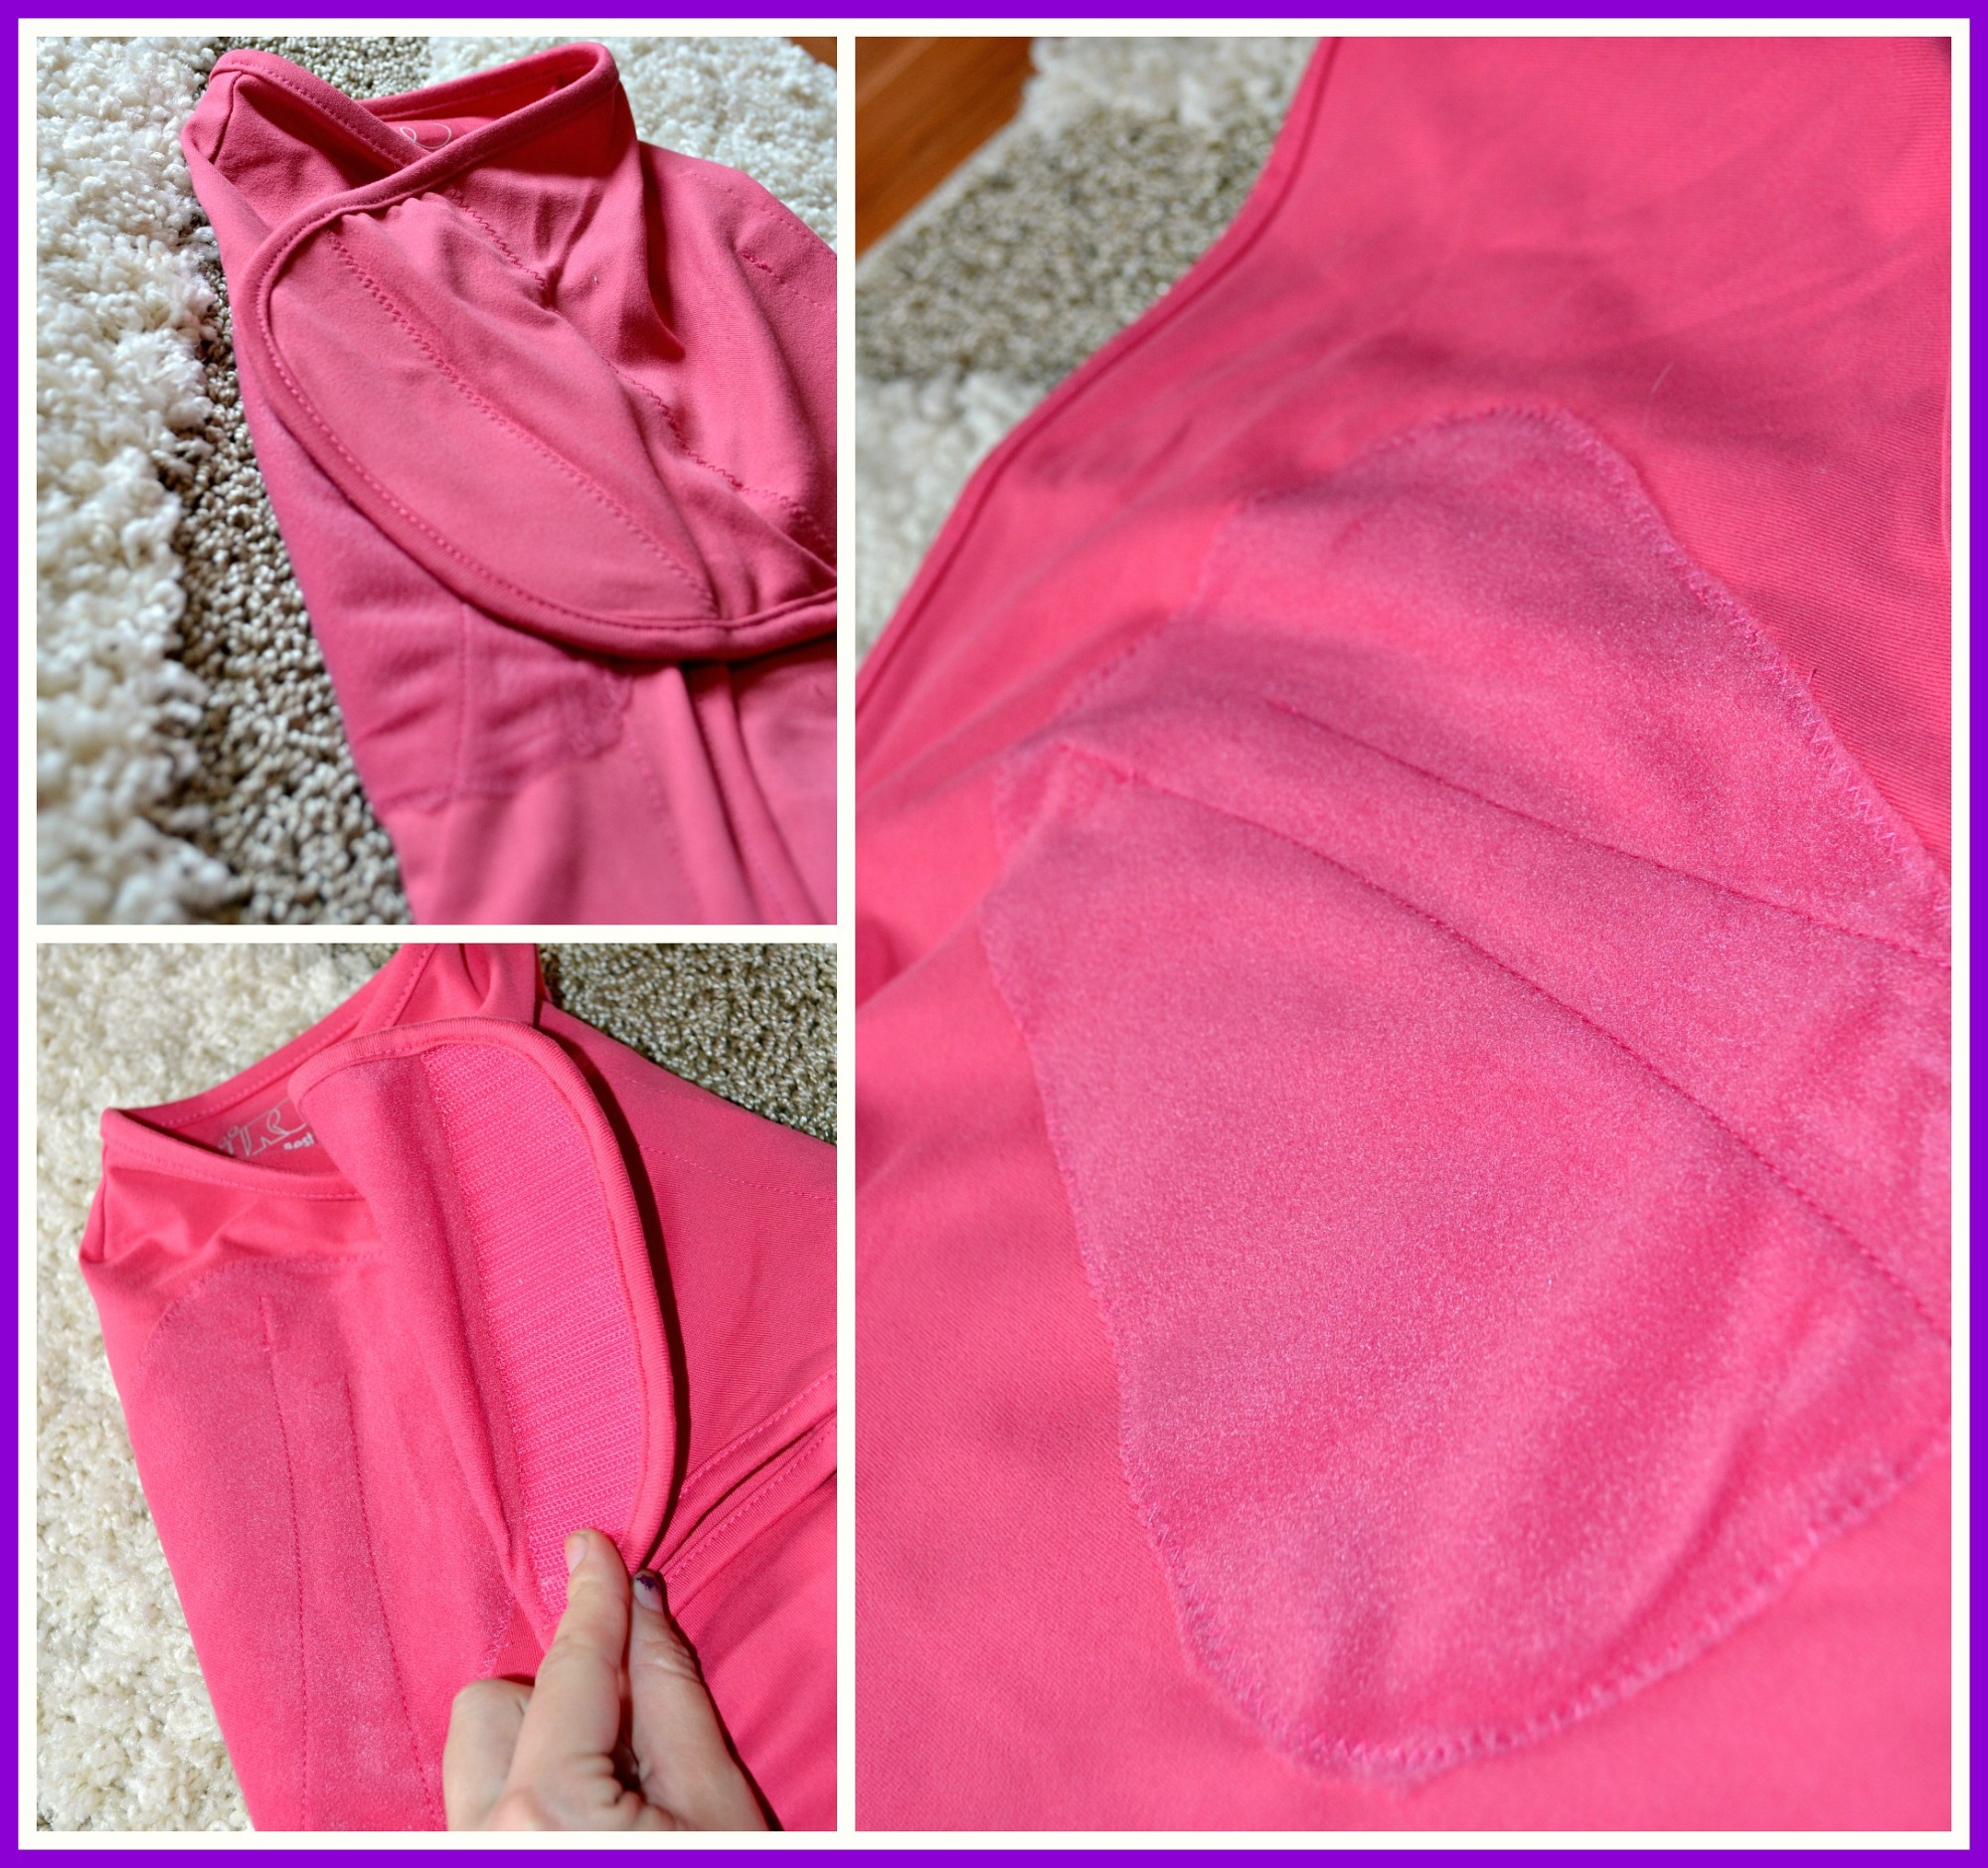 Nuroo Pocket, Swaddler and Nursing Scarf Review (Getting Ready For Baby Gift Guide)